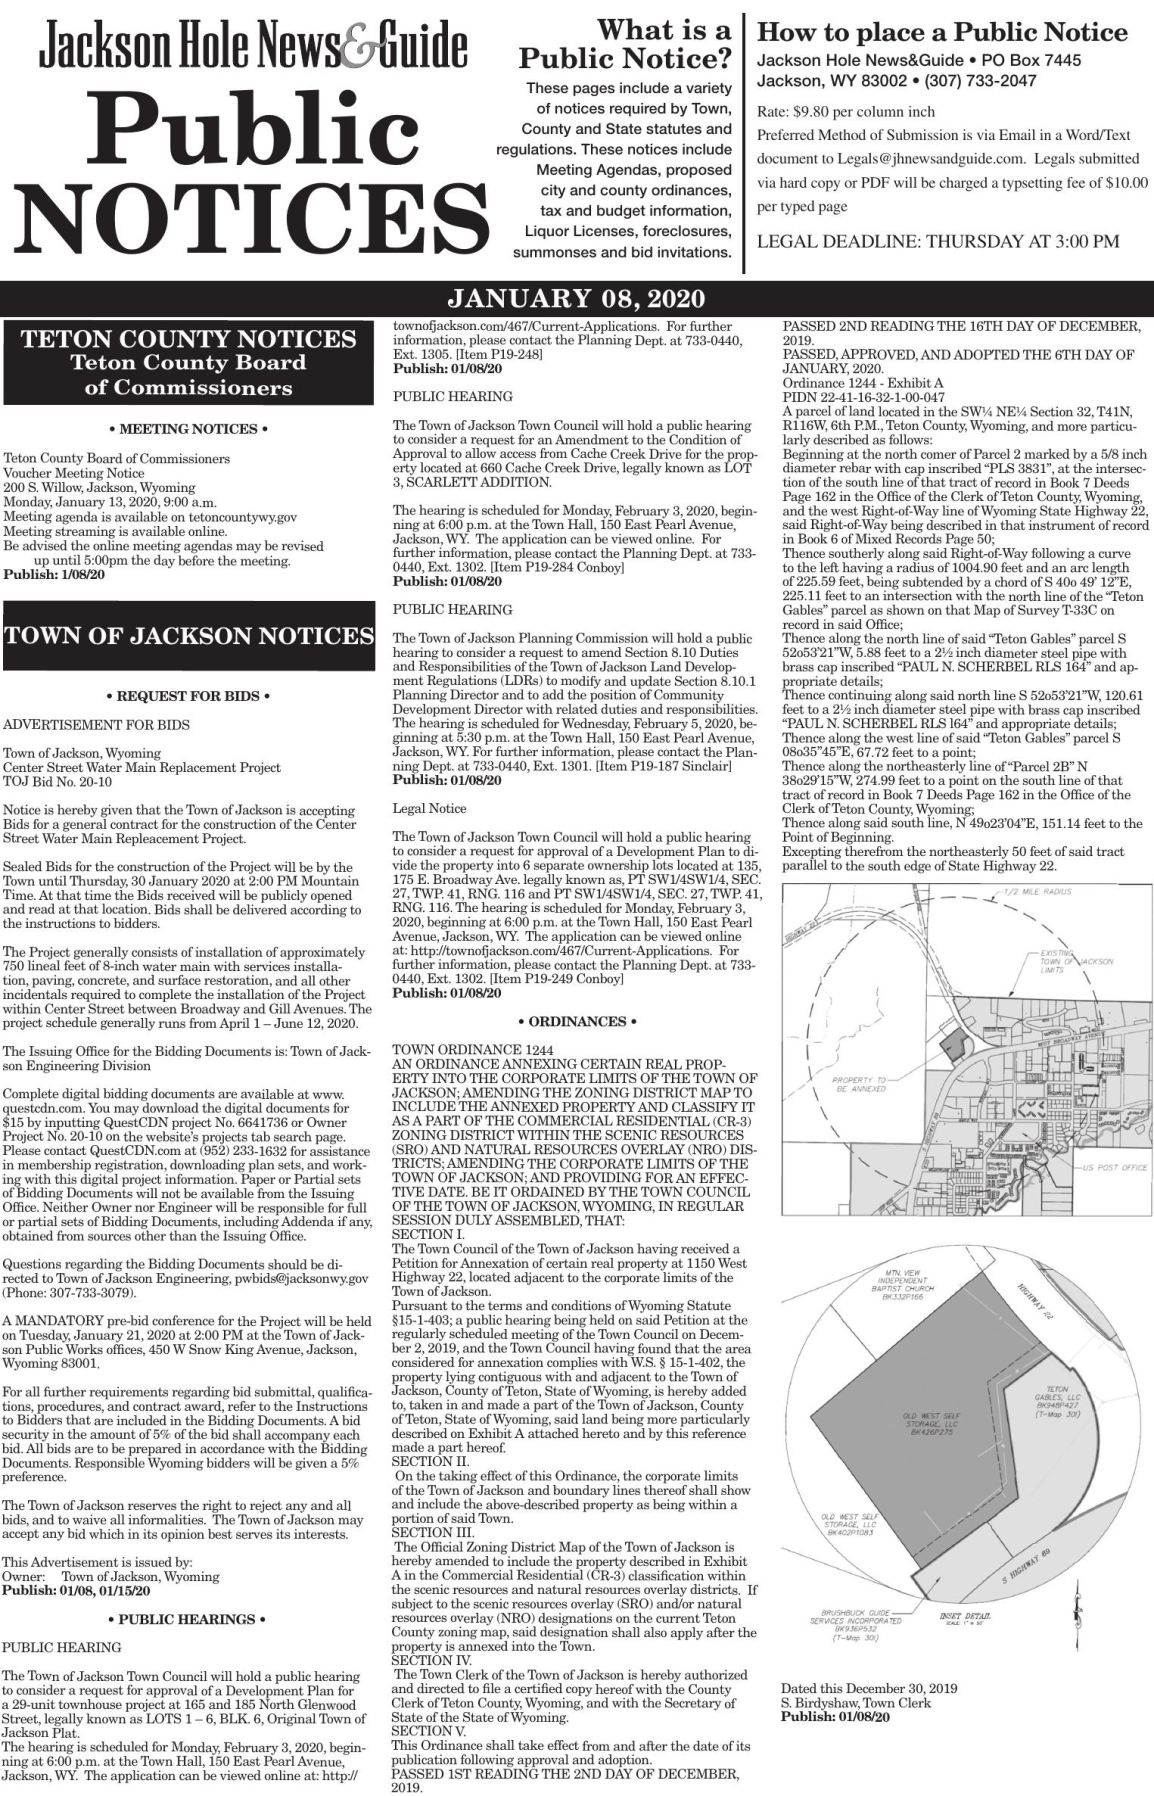 Public Notices, January 08, 2020